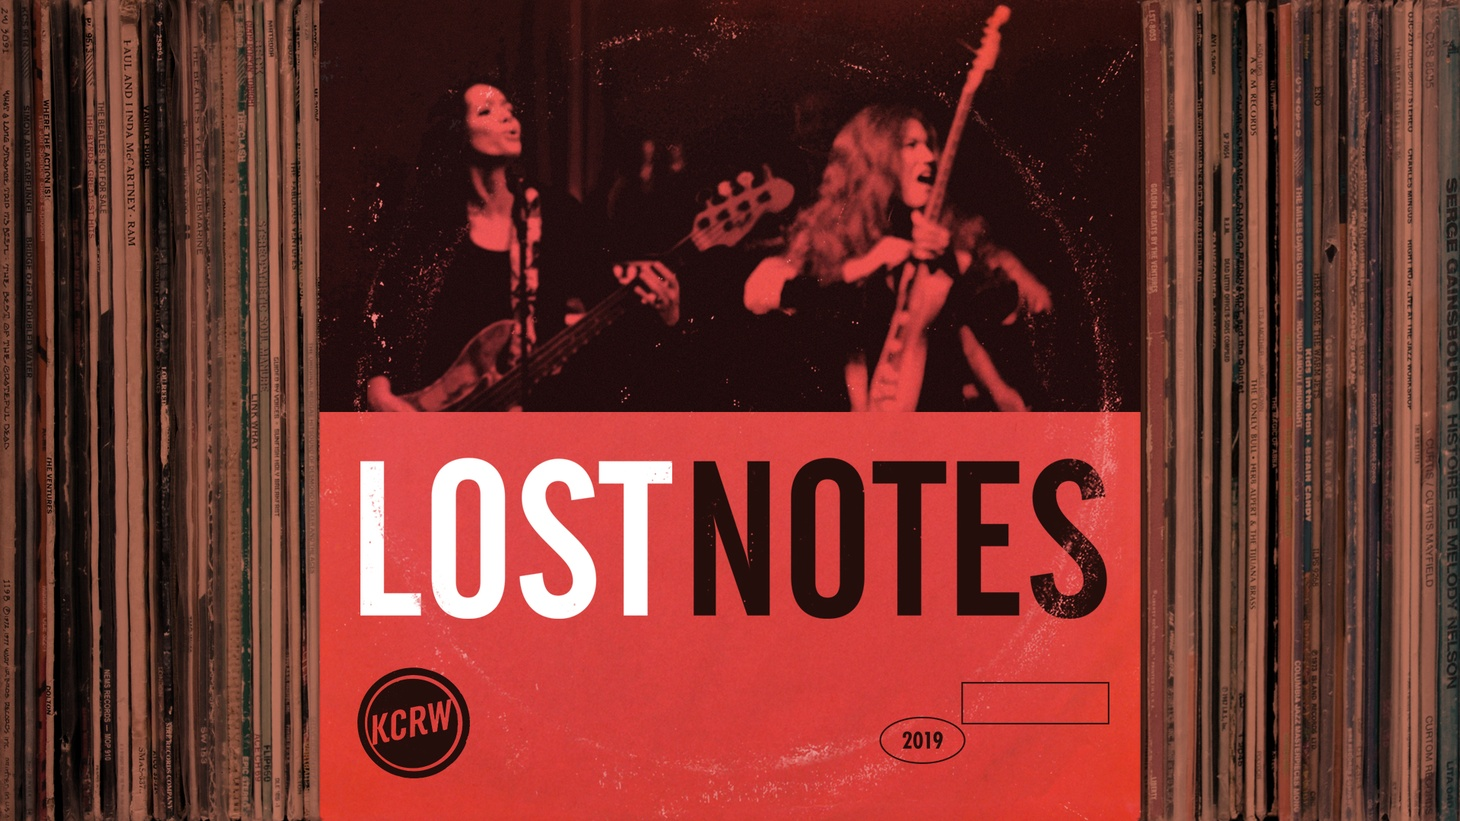 On this holiday, we share two of our favorite episodes from KCRW's music documentary podcast Lost Notes. The latest season looked at artists' legacies, like that of Fanny, the first all-female band signed to a major label in the 1970s.